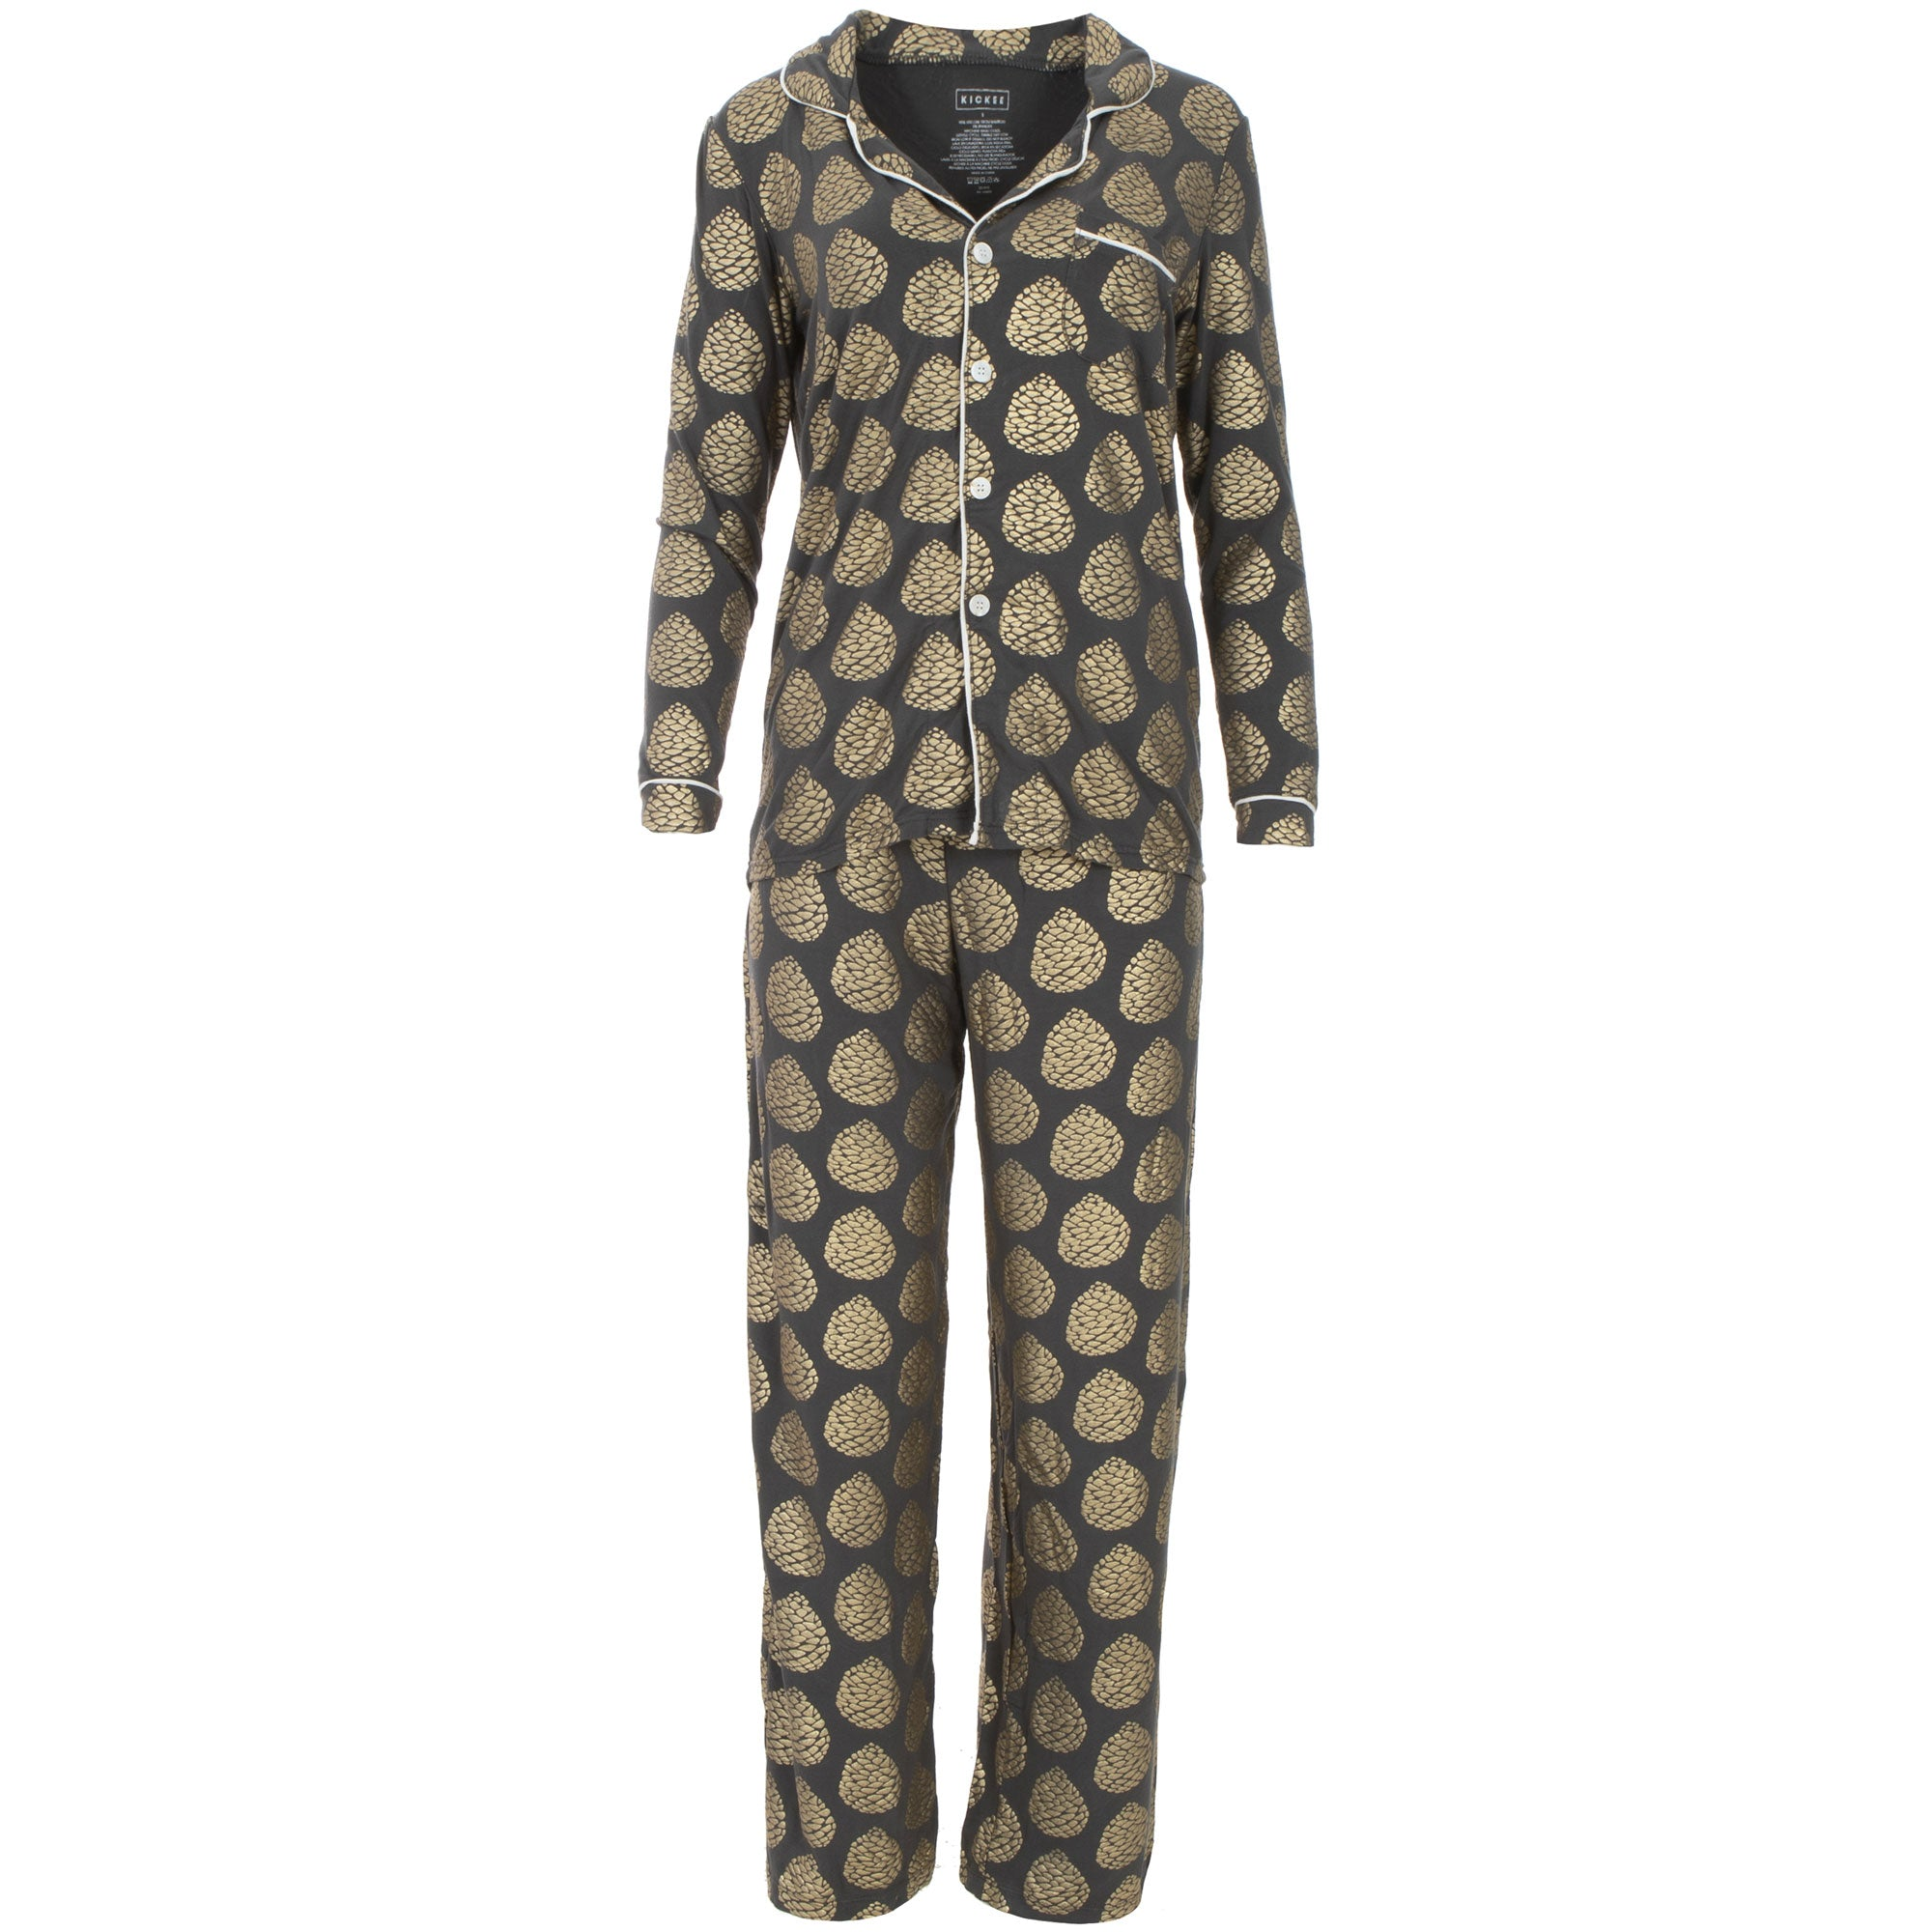 KicKee Pants Womens Collared Pajama Set - Pinecones